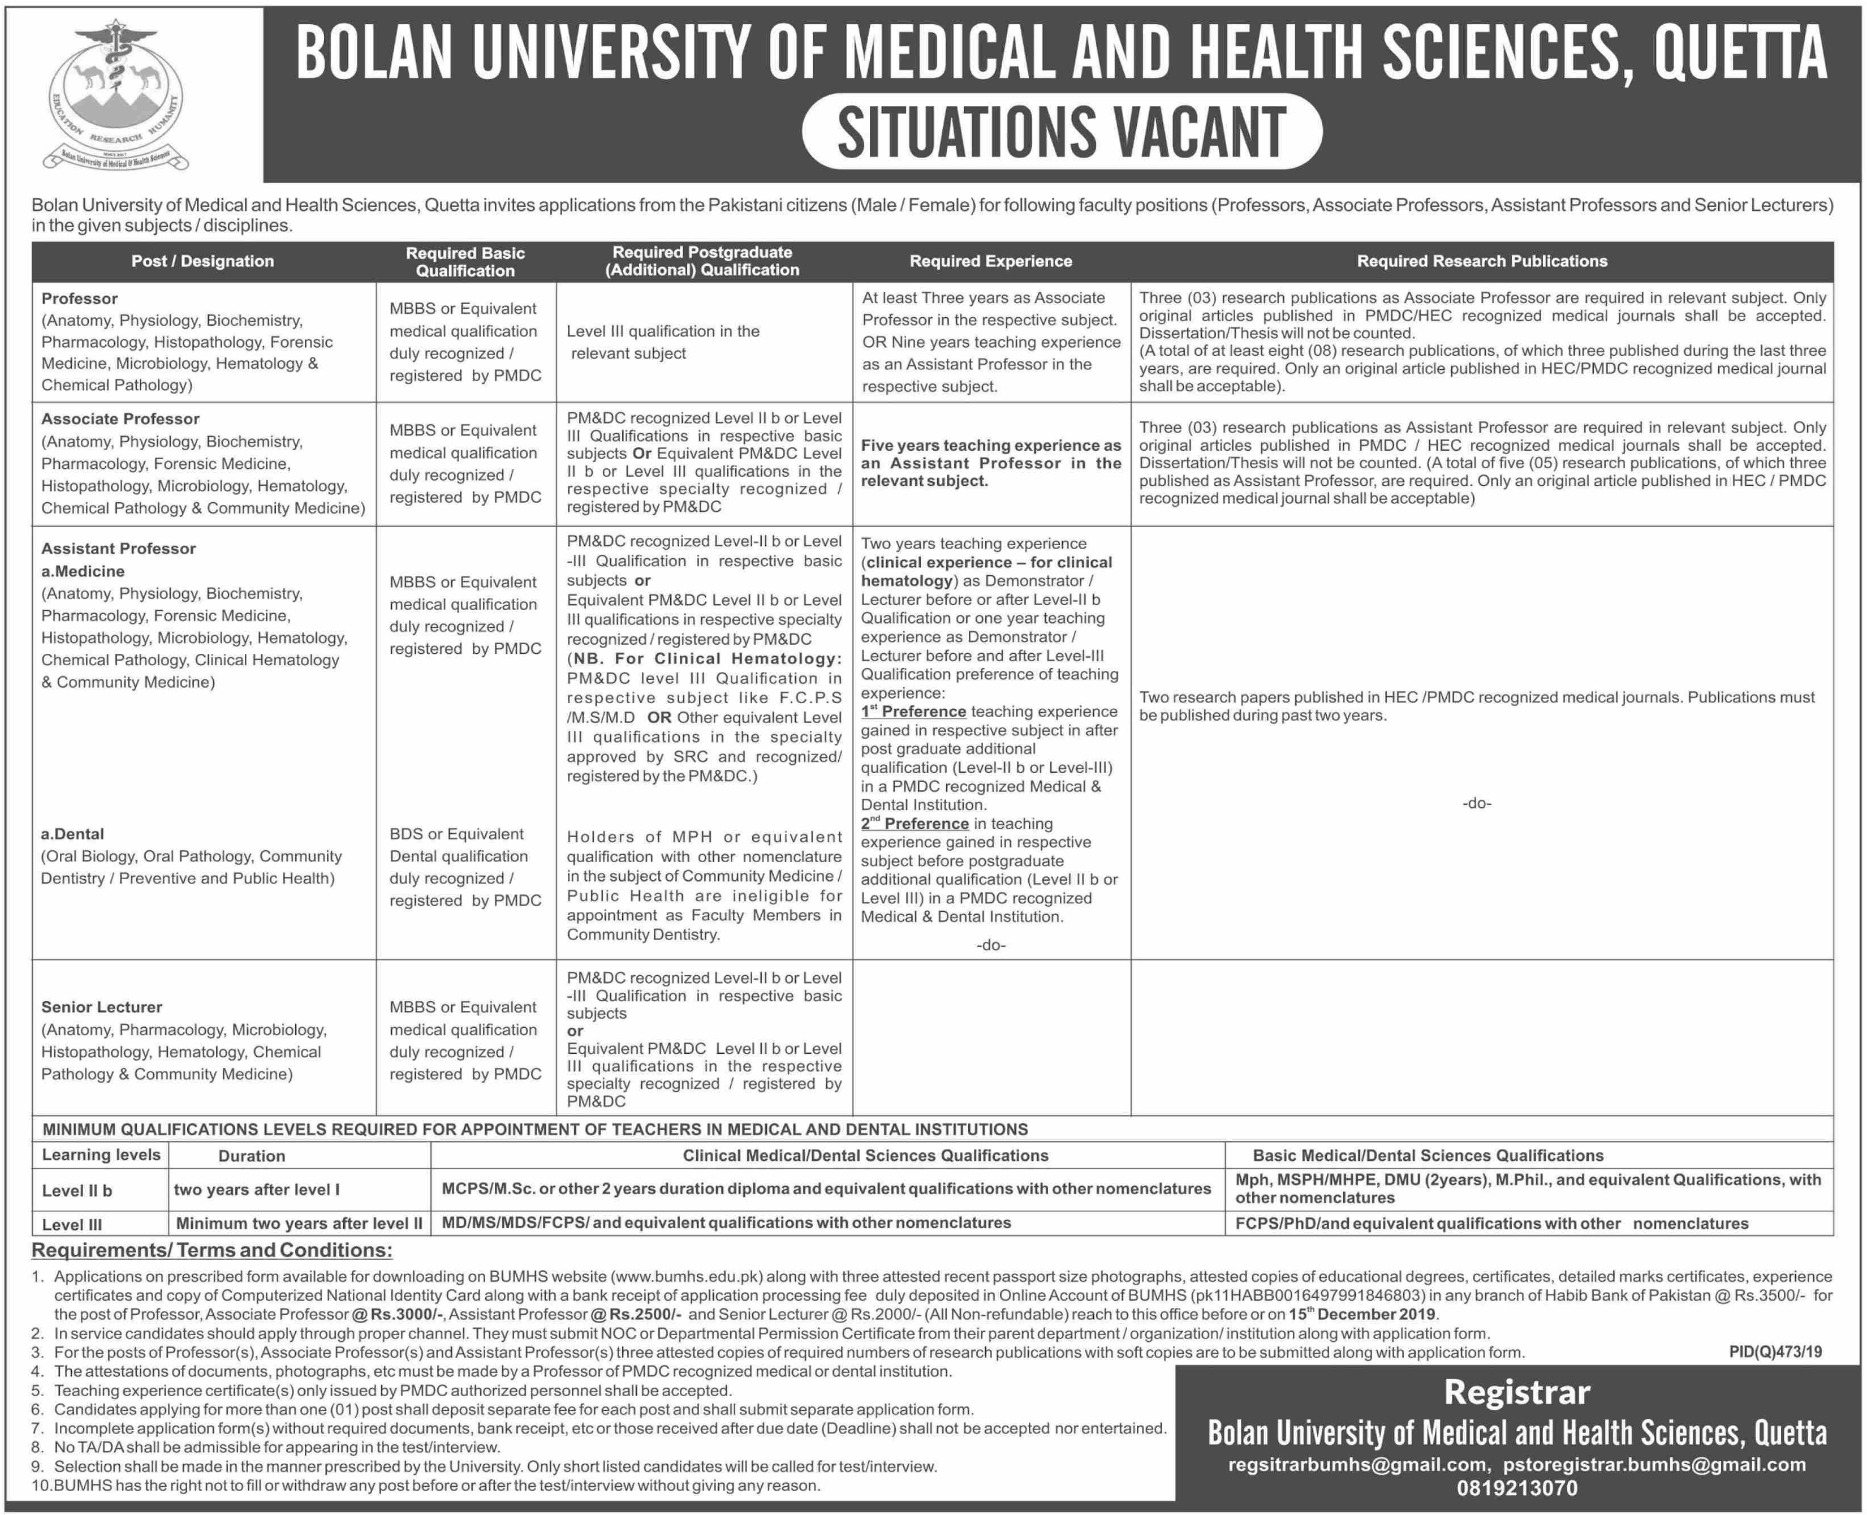 Bolan University of Medical & Health Sciences BUMHS Quetta Jobs 2019